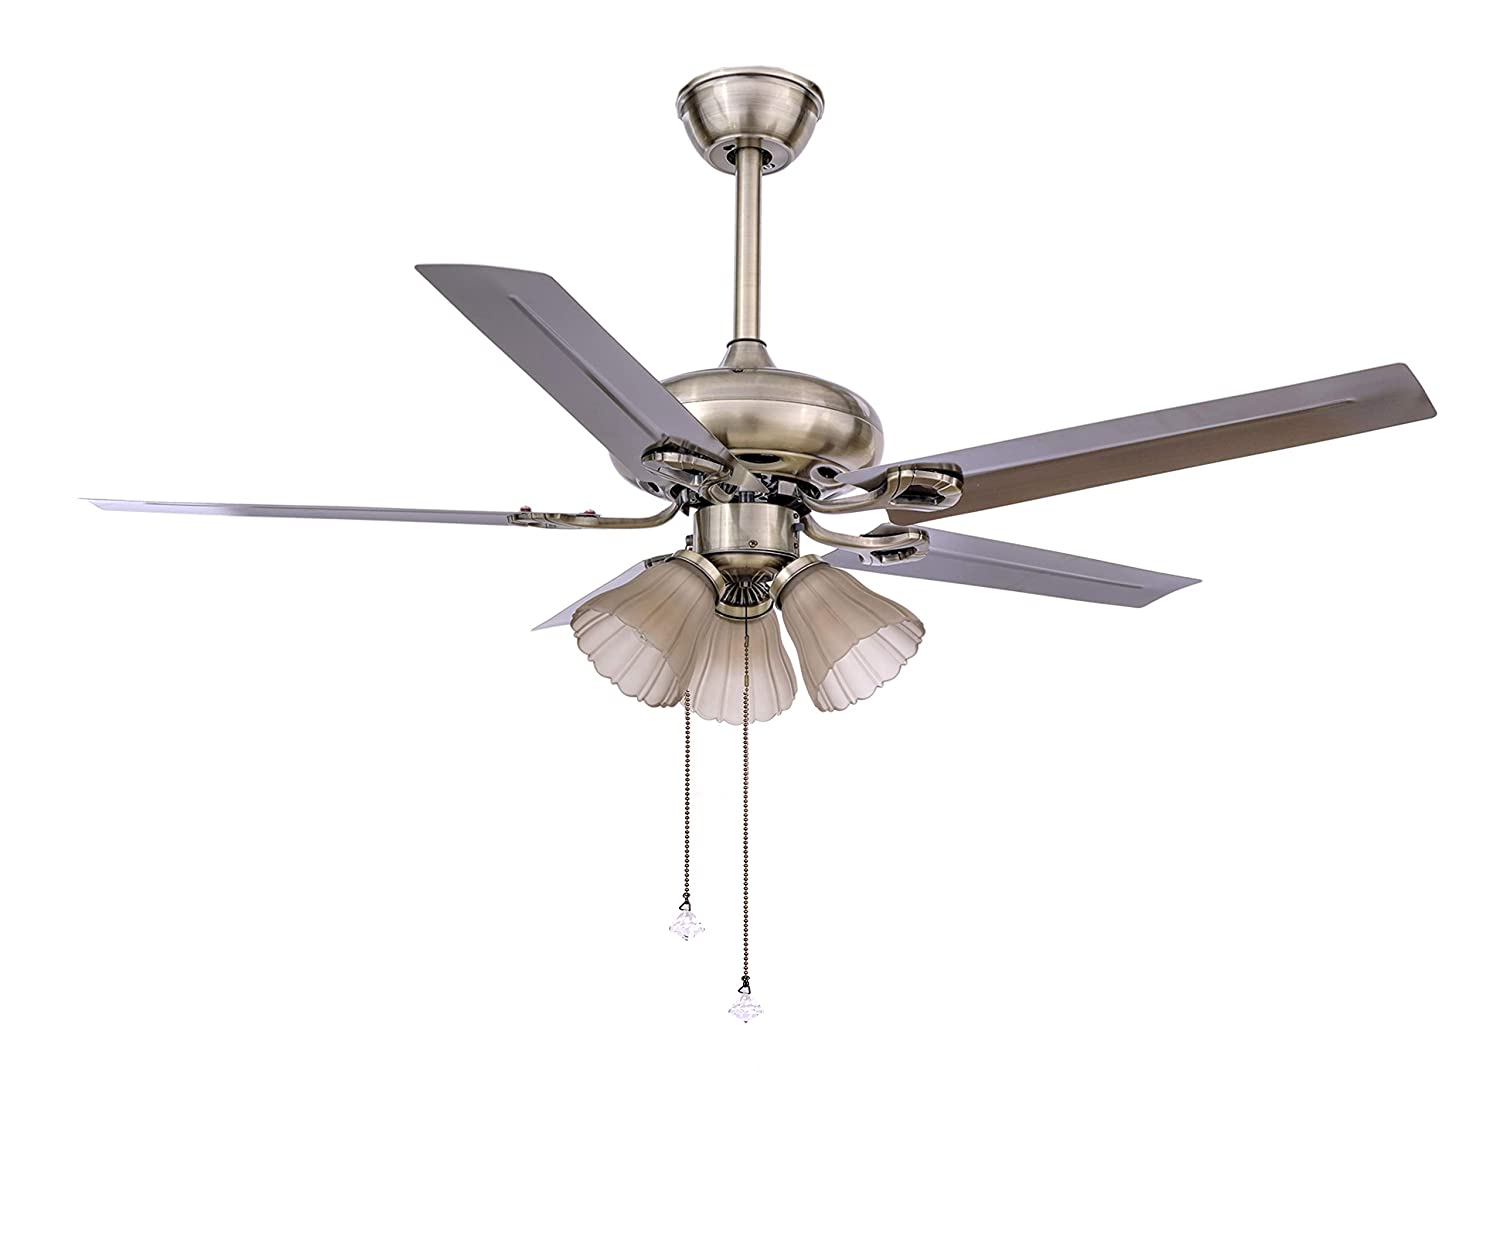 Buy Hans Lighting 5 Metal Blade Ceiling Fan With Light 48 Inches Online At Low Prices In India Amazon In